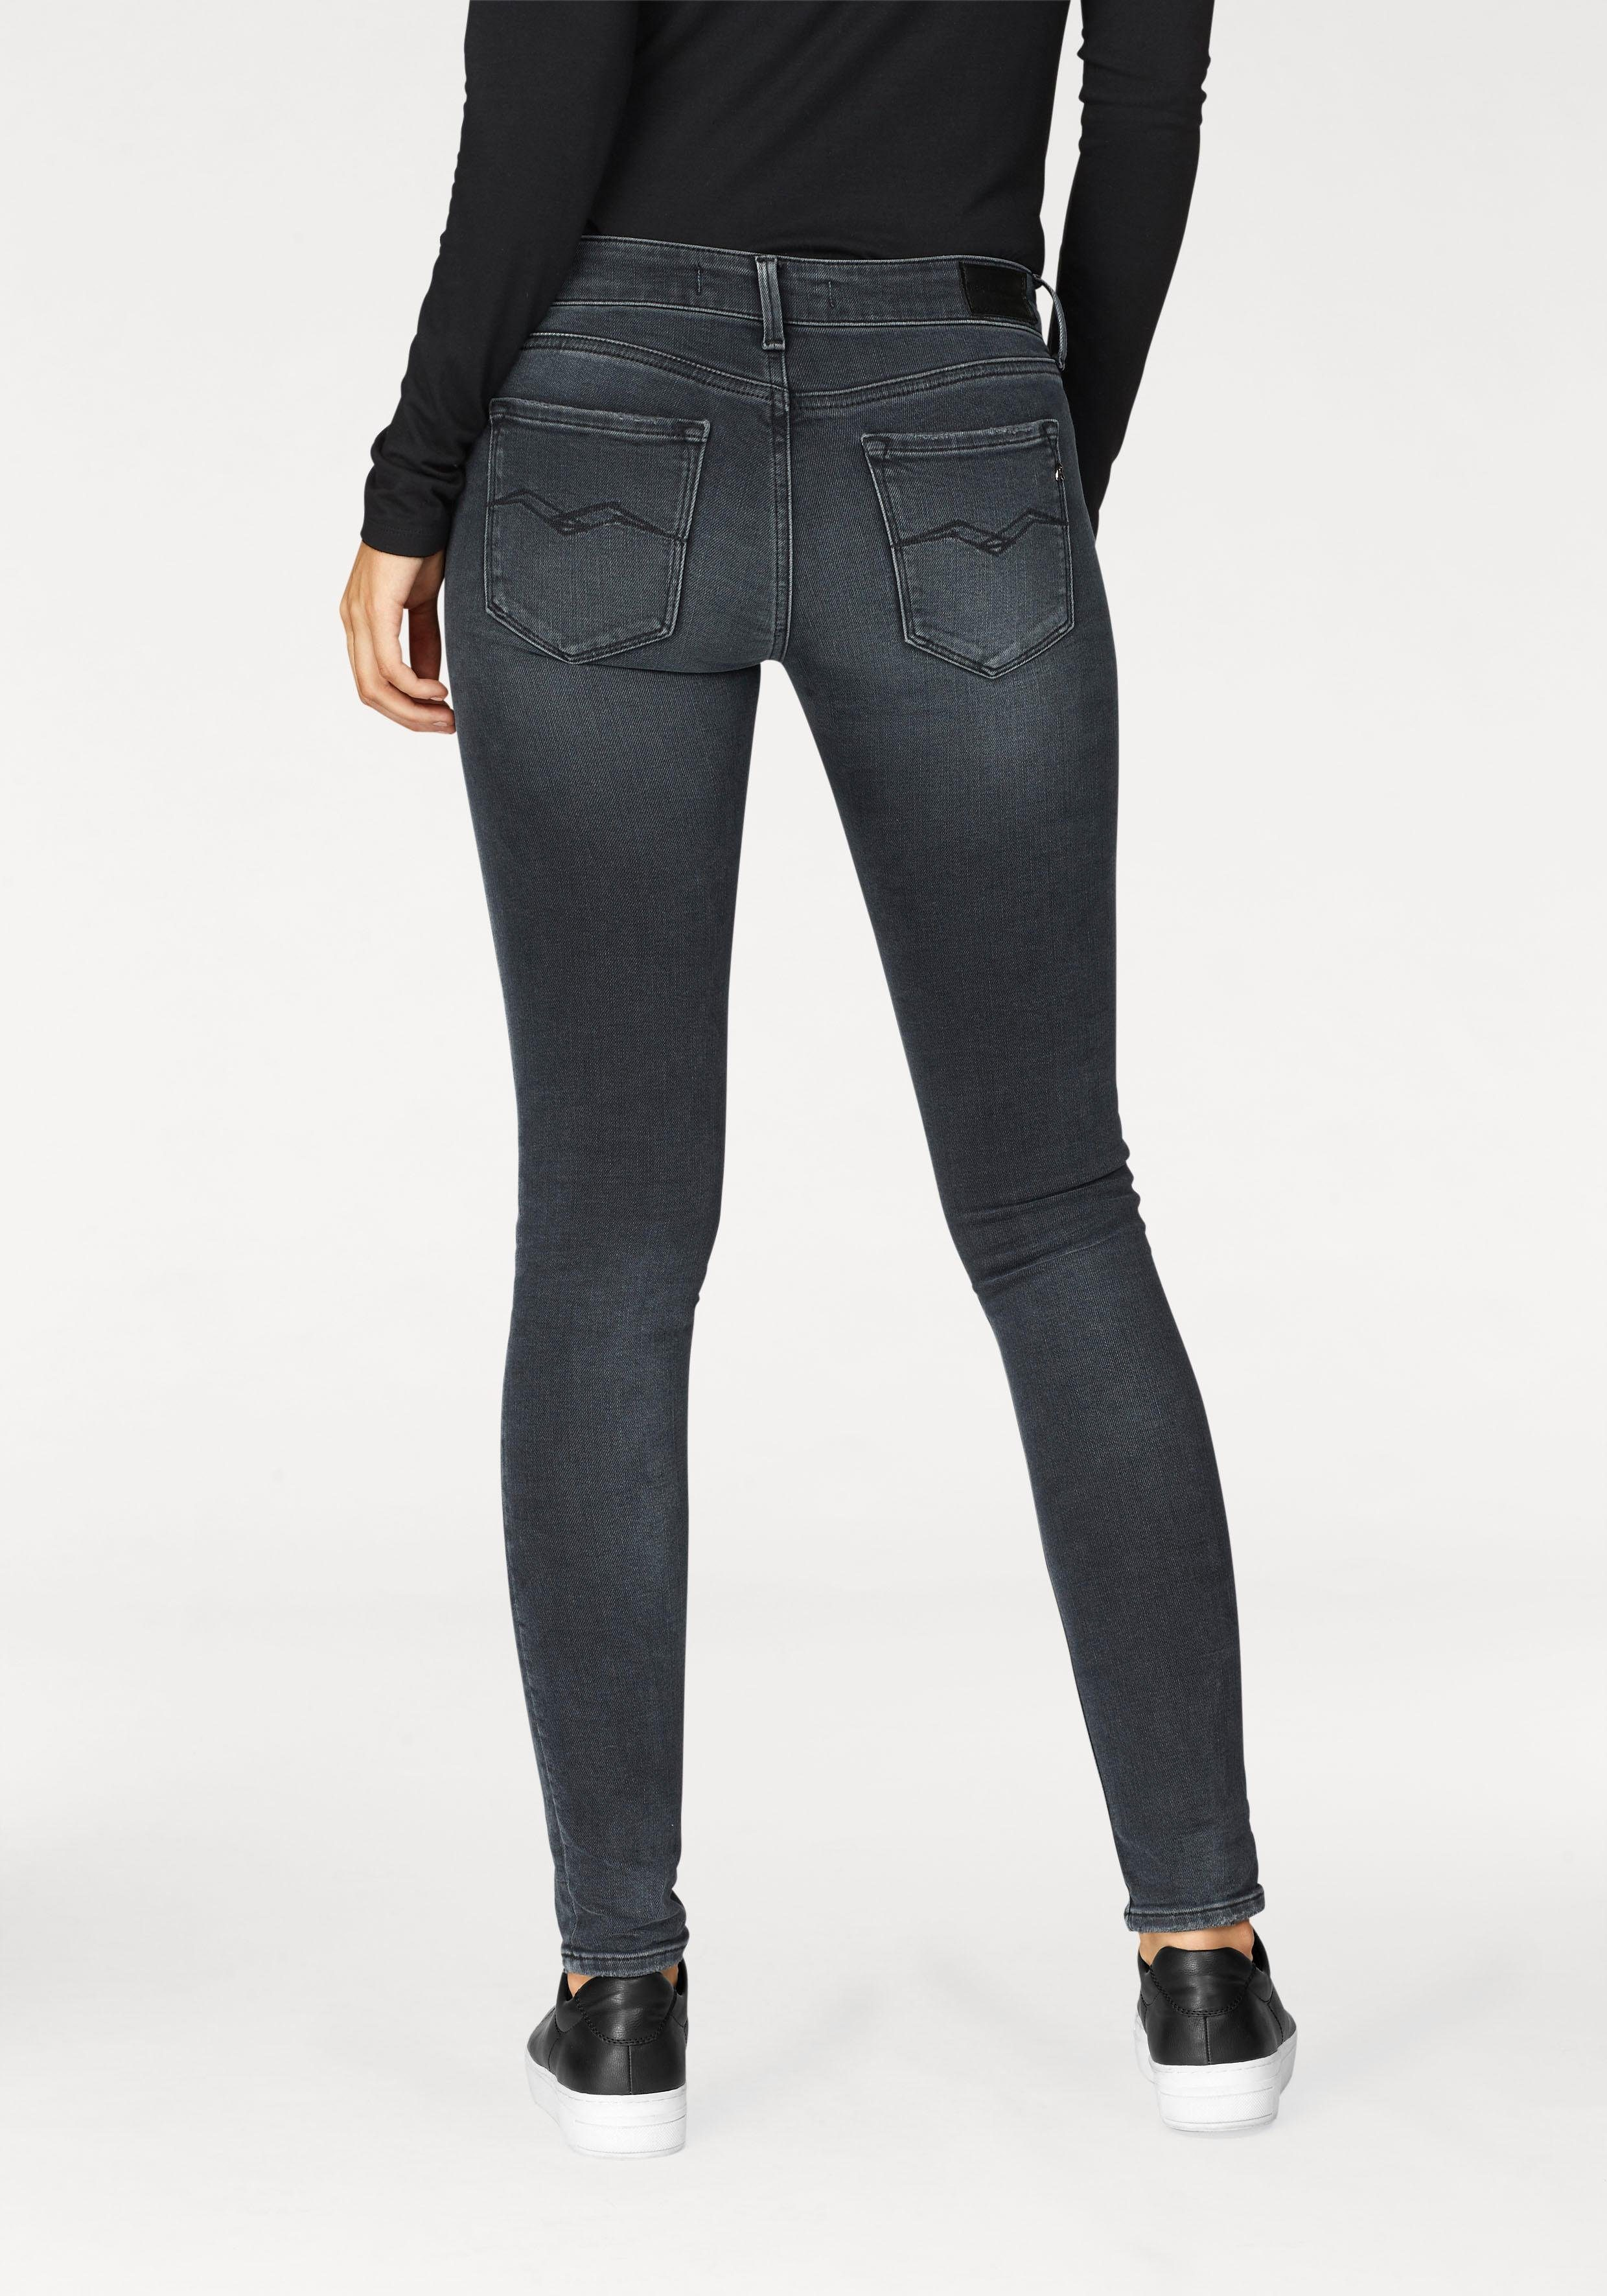 Replay Skinny-fit-Jeans »LUZ« mit besonderer Blue-Black-Waschung